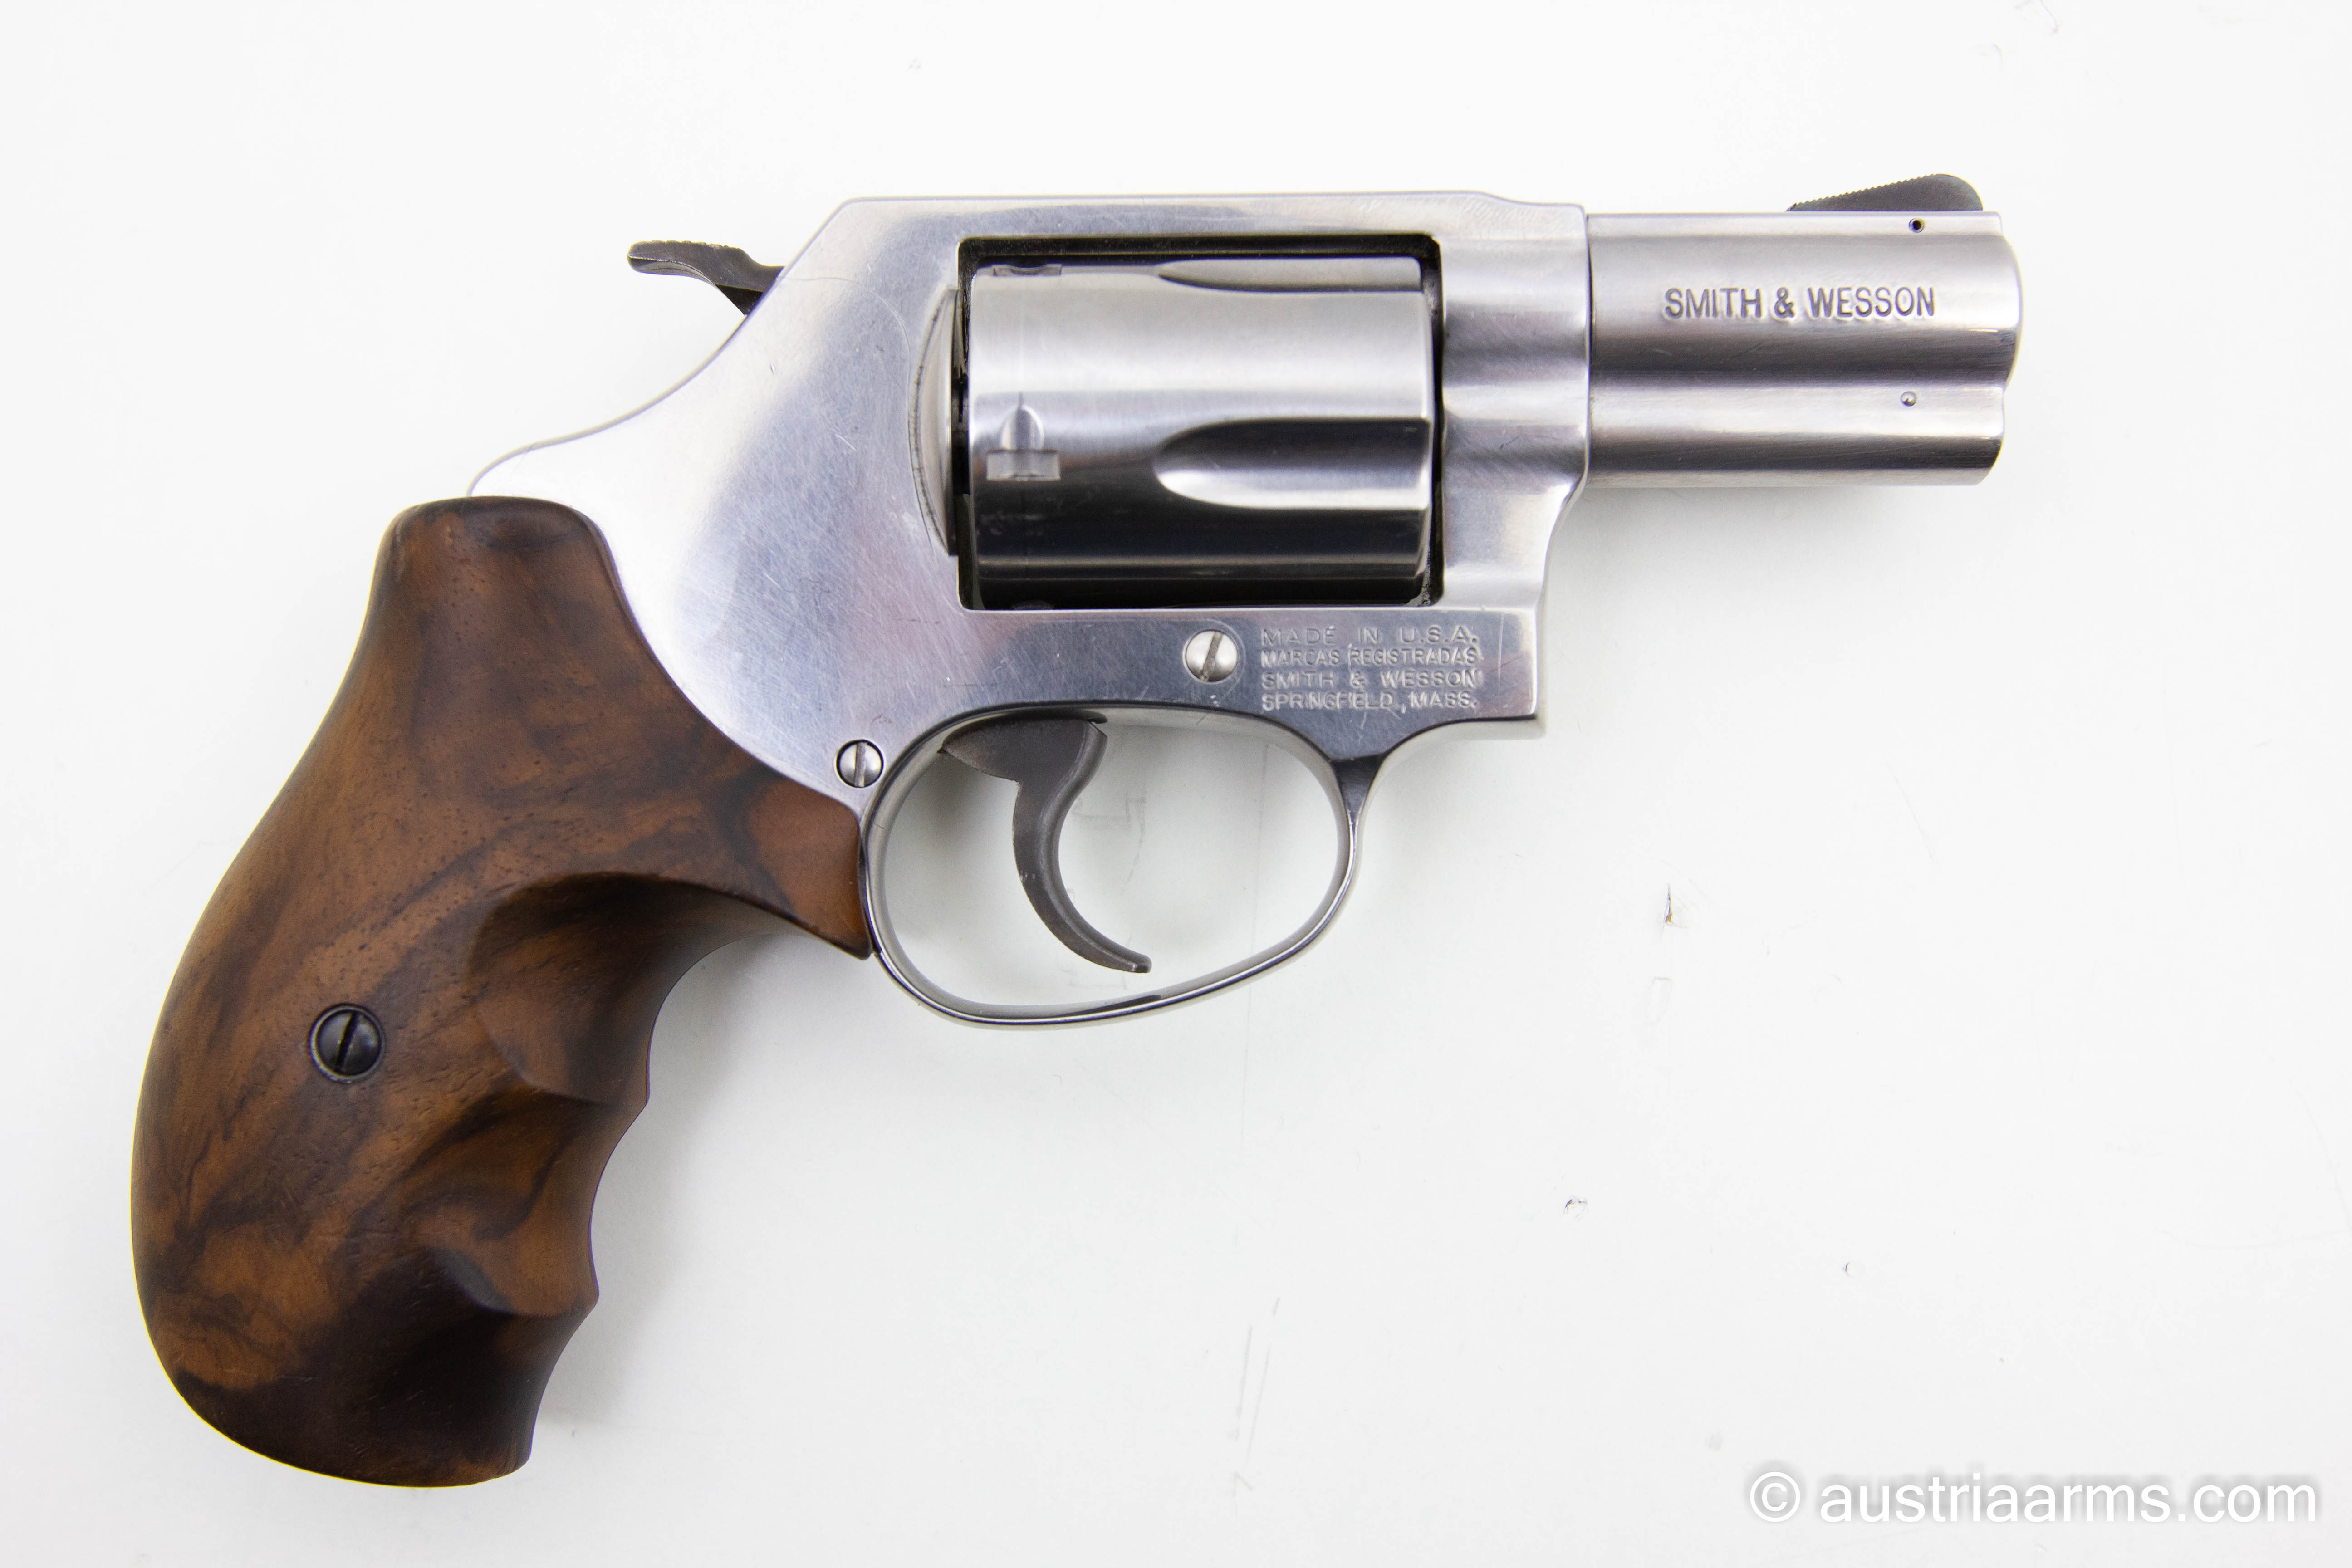 Smith & Wesson Mod. 60, 357 Magnum - Image 2